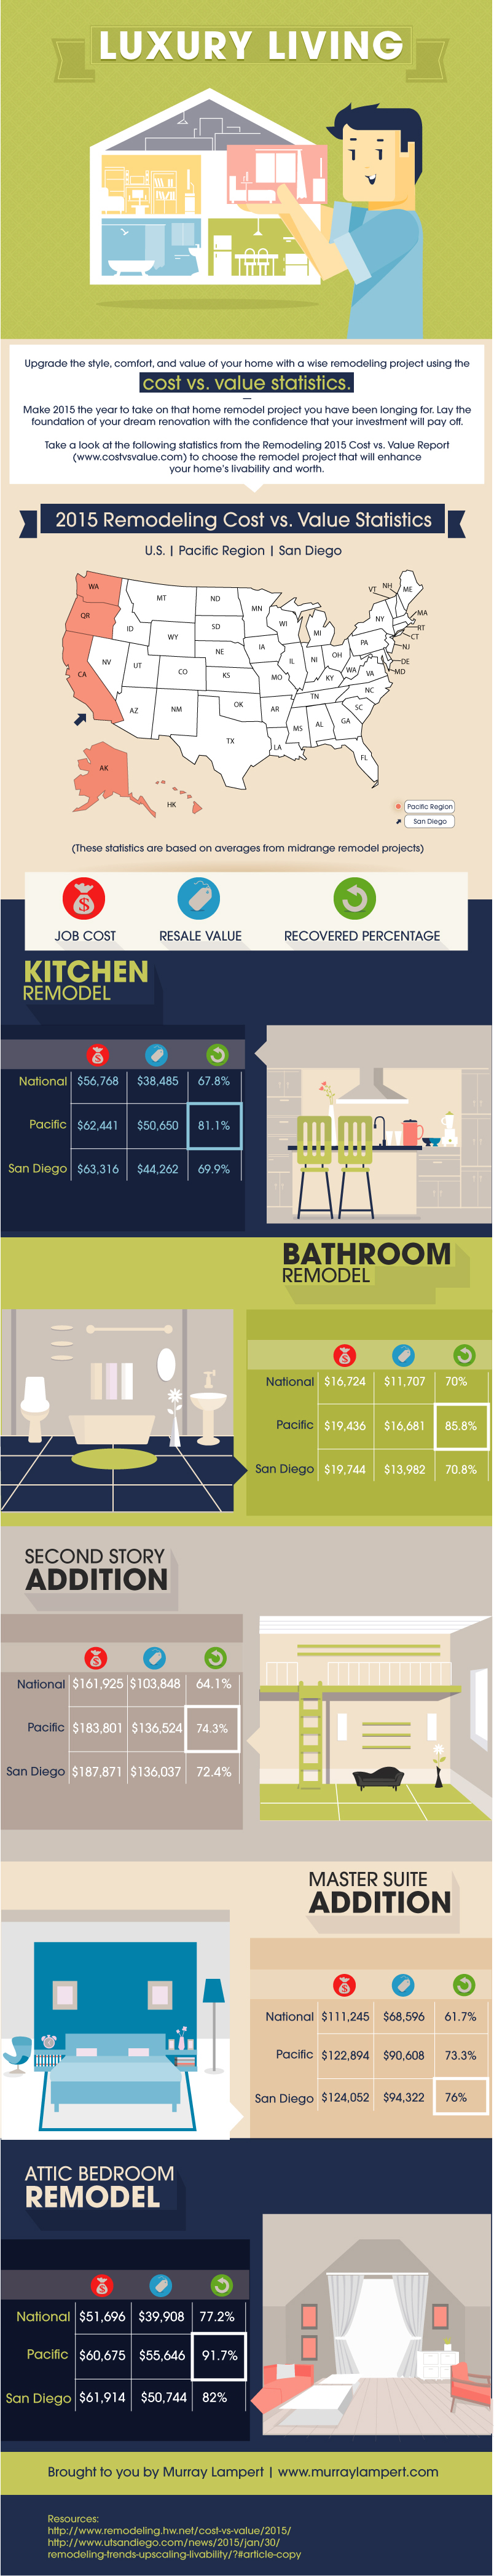 Value of Home Improvements Infographic